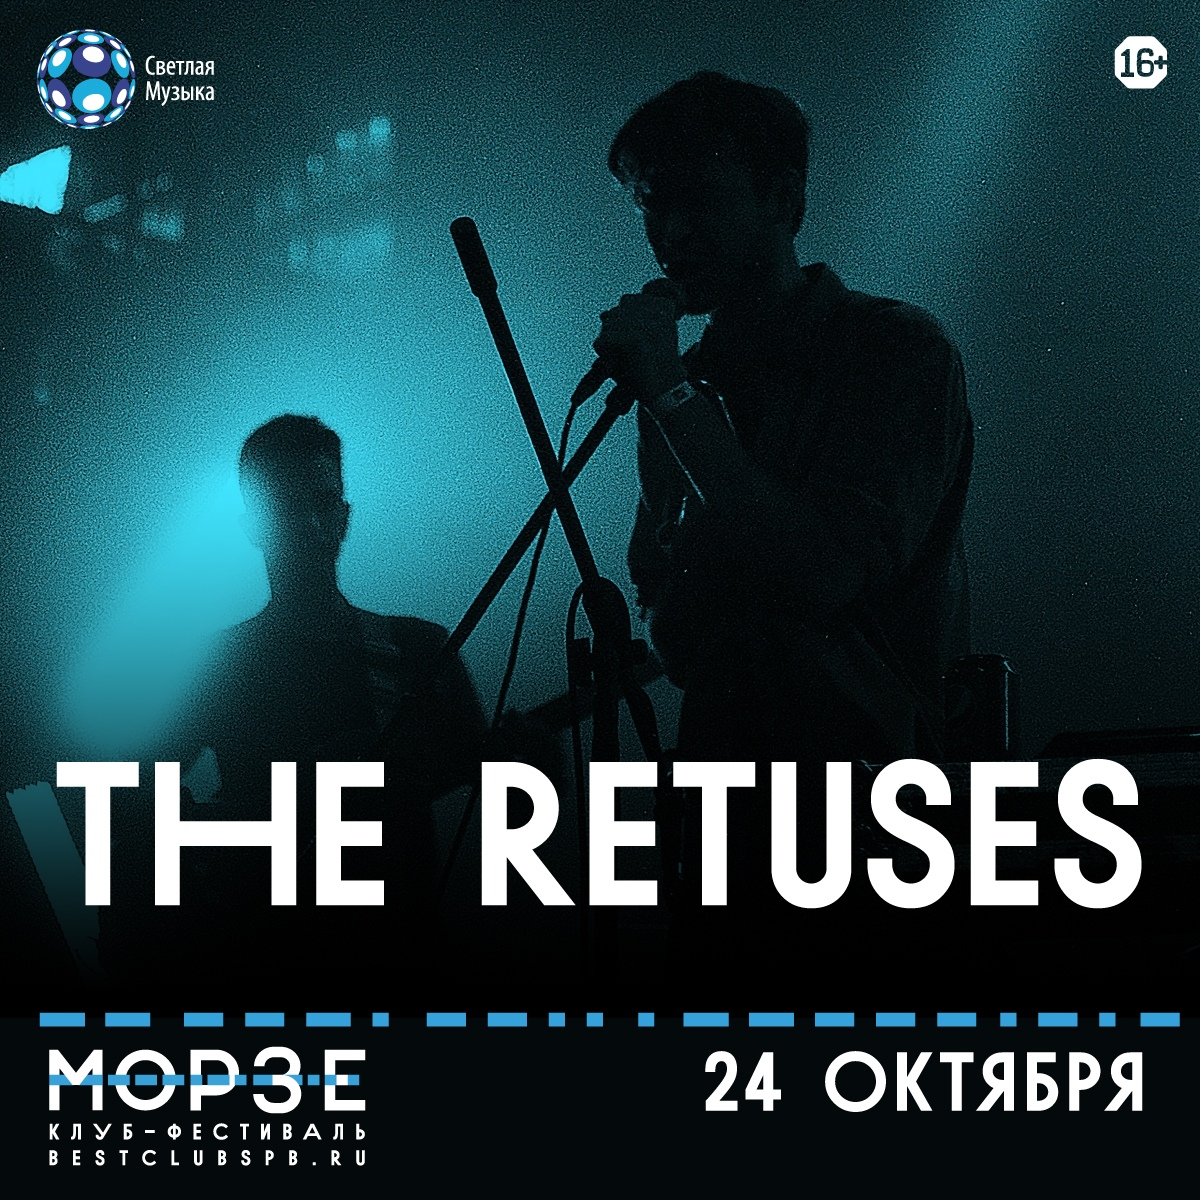 THE RETUSES в Санкт-Петербурге 24.10.2020